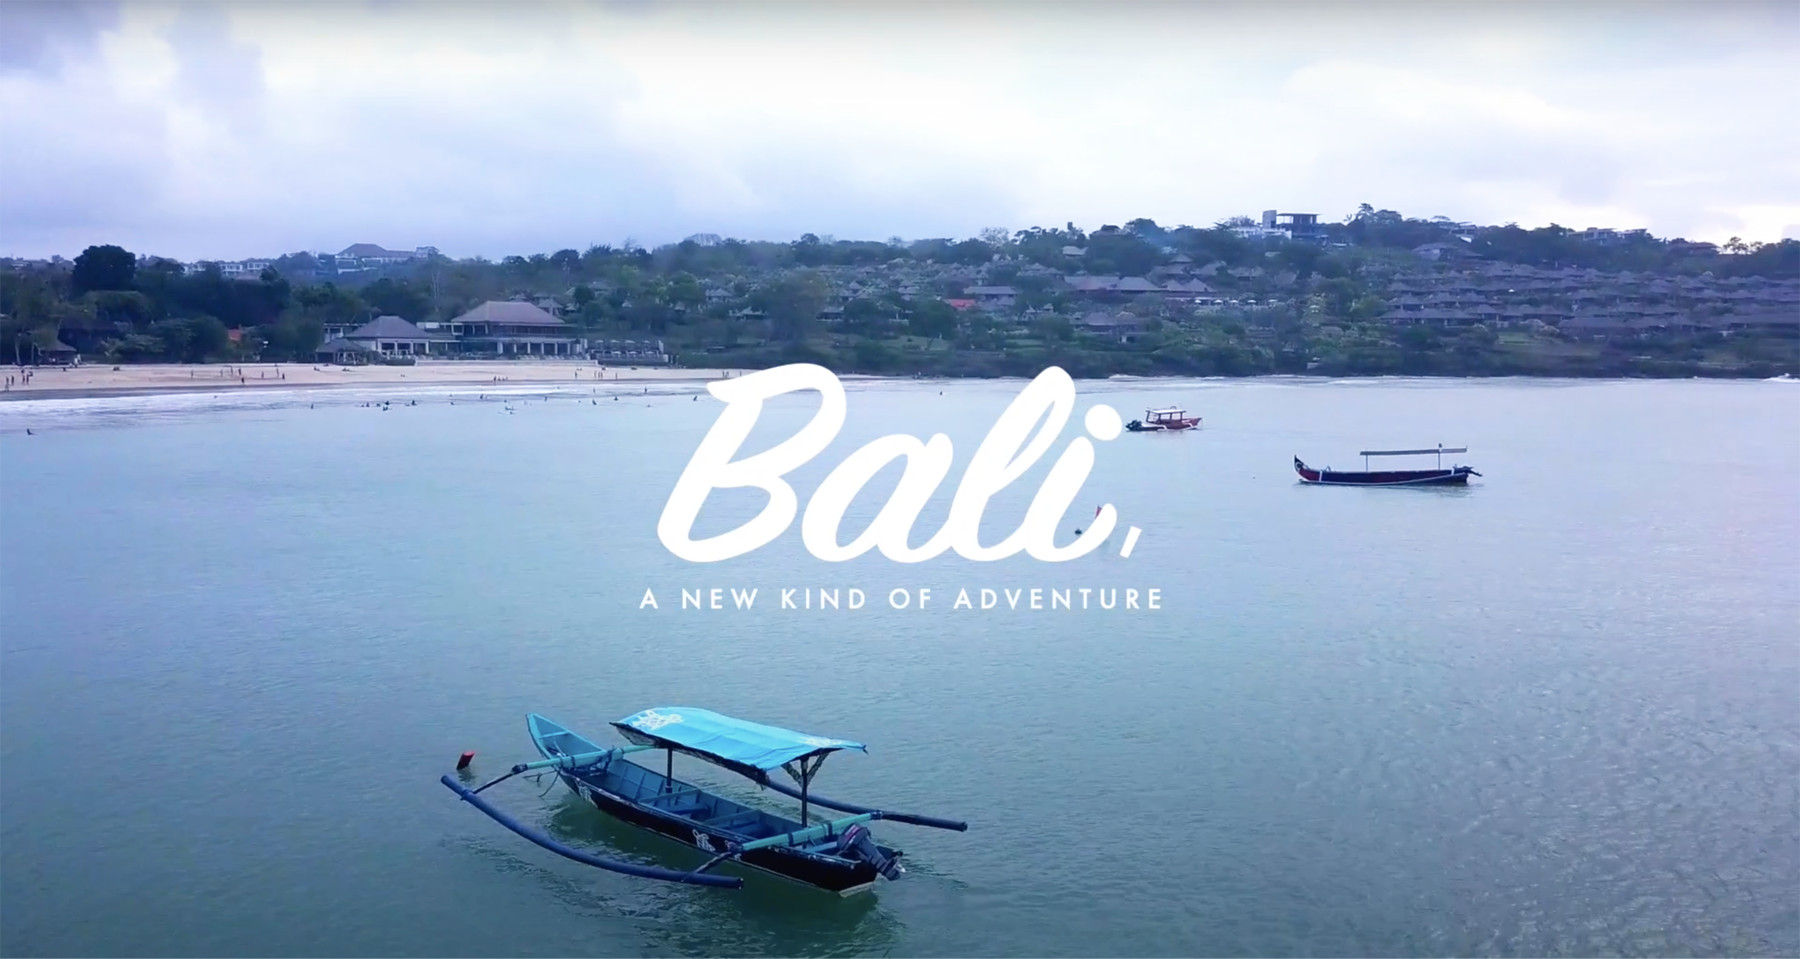 Bali Hotels Association Launches New Video Series to Inspire Travel to the Island